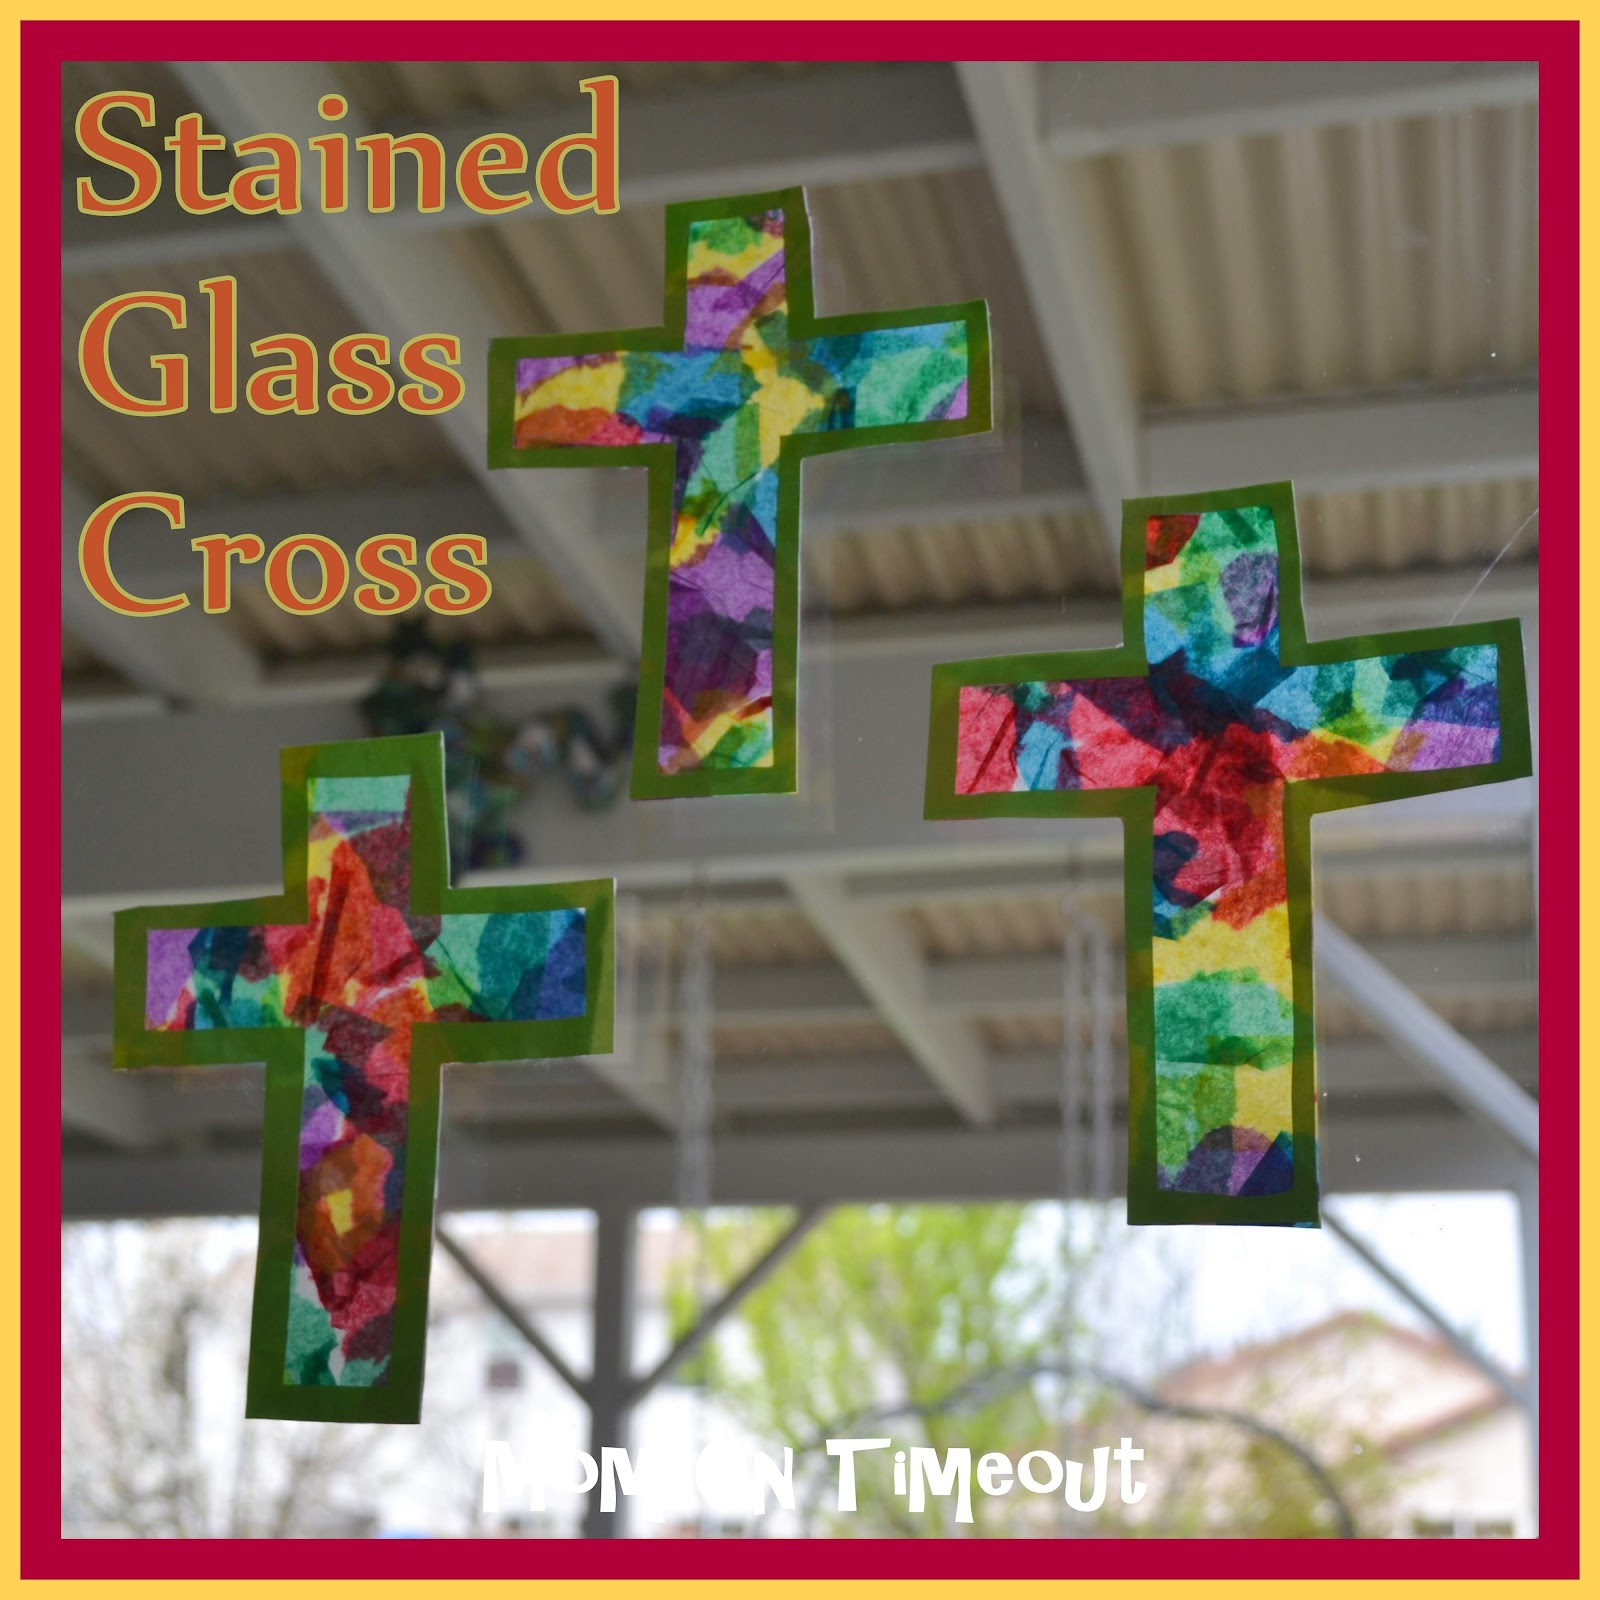 Cross template simple cross image craft ideas pinterest crosses - Stained Glass Cross Craft